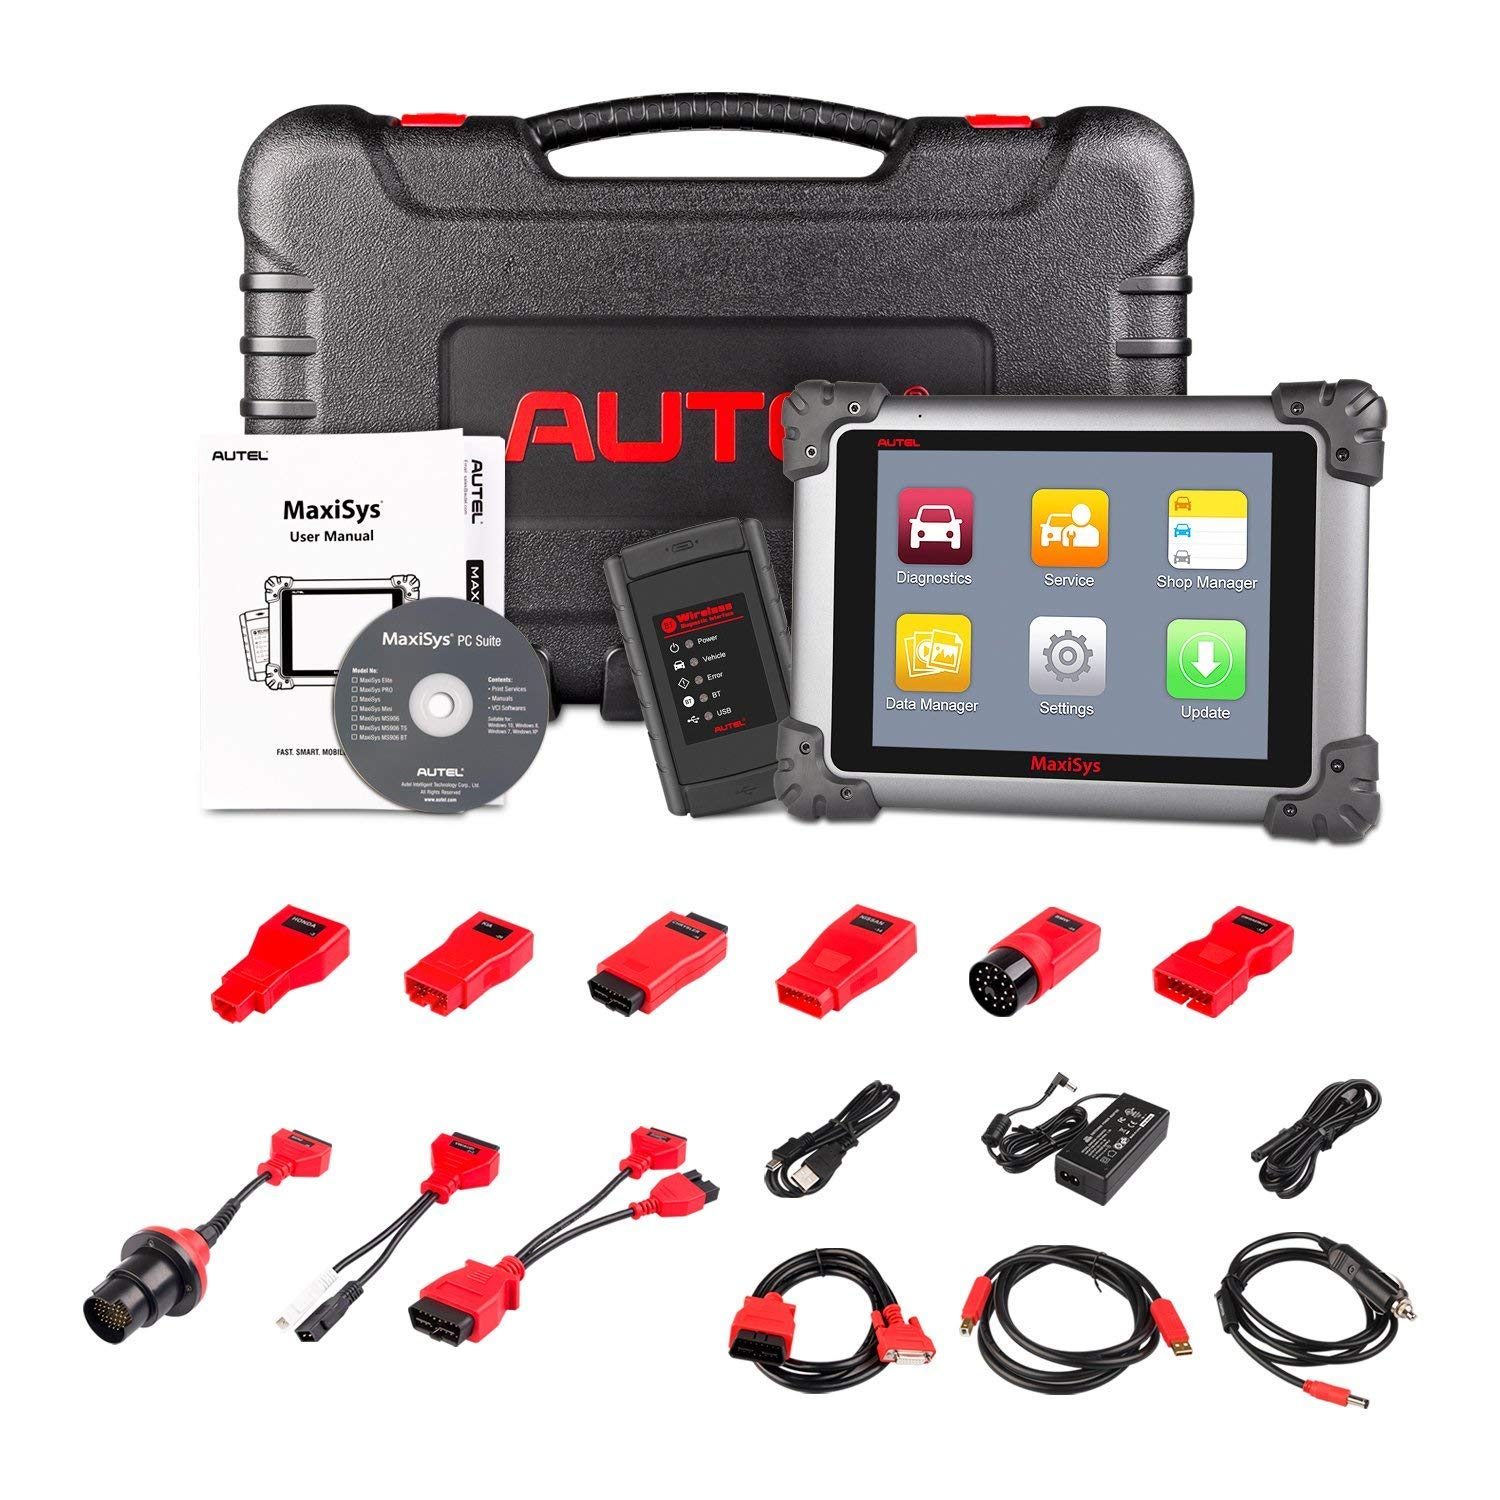 Autel Maxisys MS908 Diagnostic Scan Tool Android Analysis System with Advanced Coding Full Modules with Free Update Online, OE-Level Diagnostics OBD2 Code Scanner